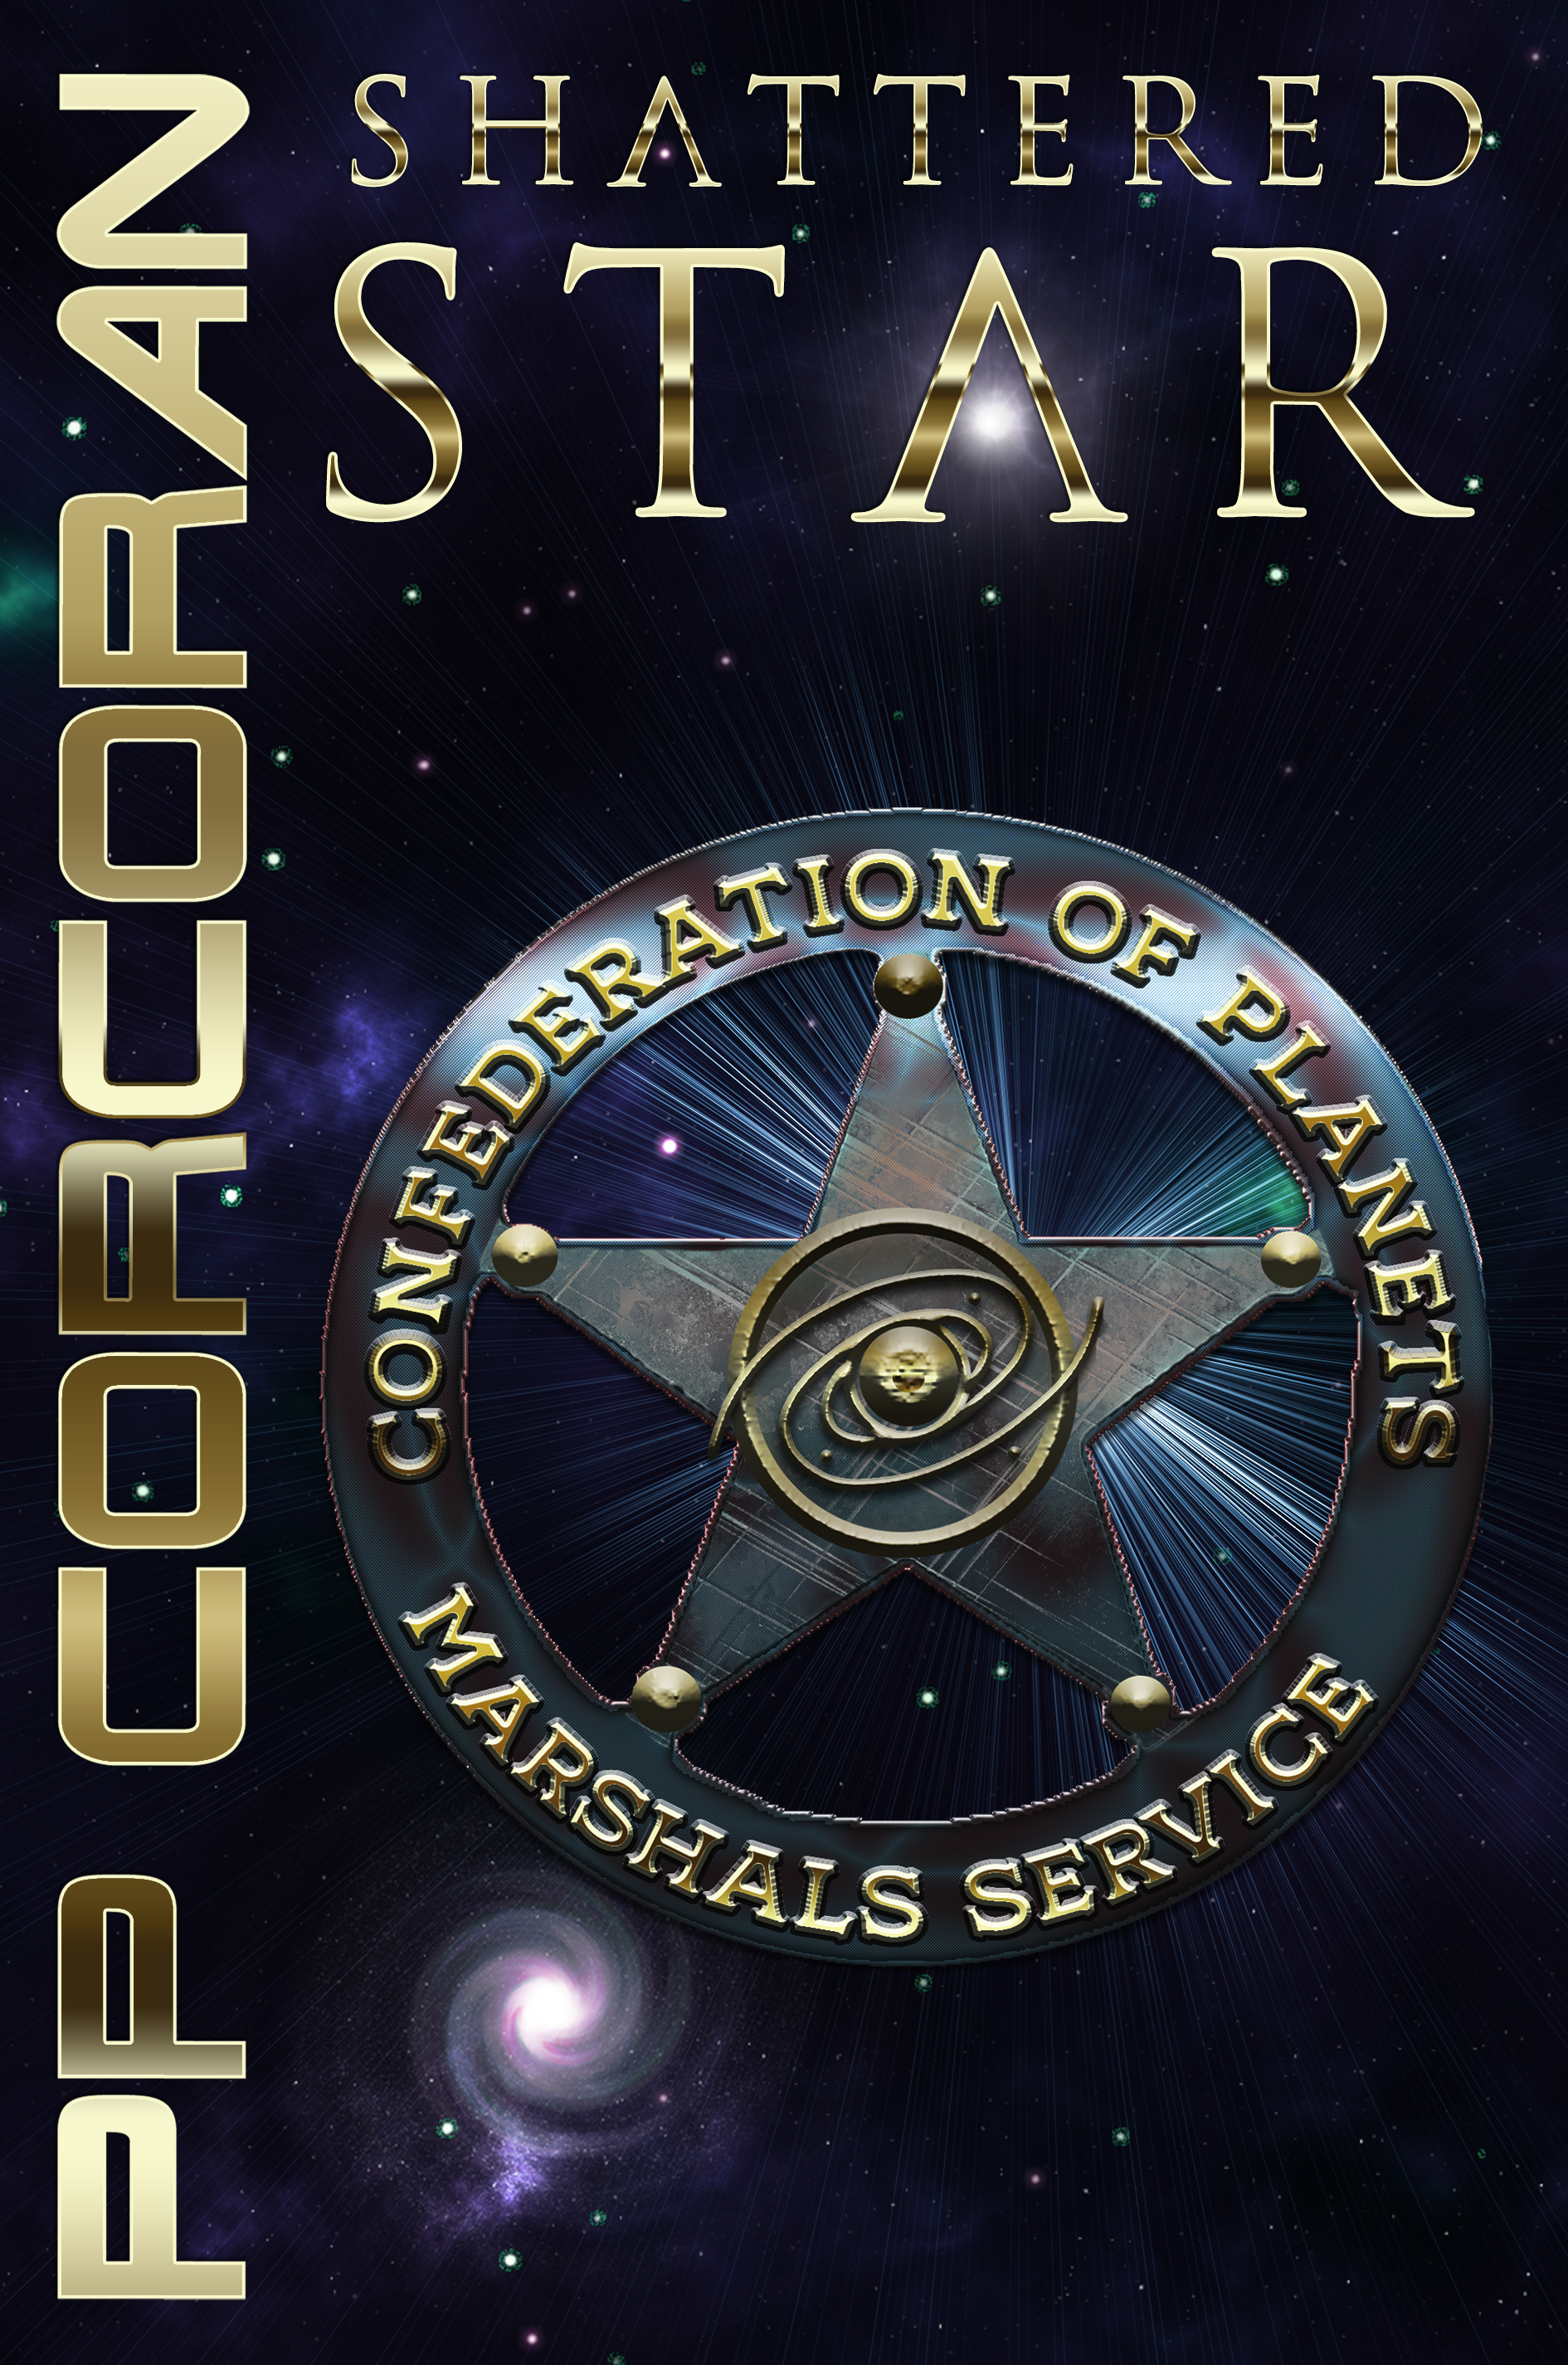 Shattered Star - PP Corcoran - Kindle v1.0 (Full-size)